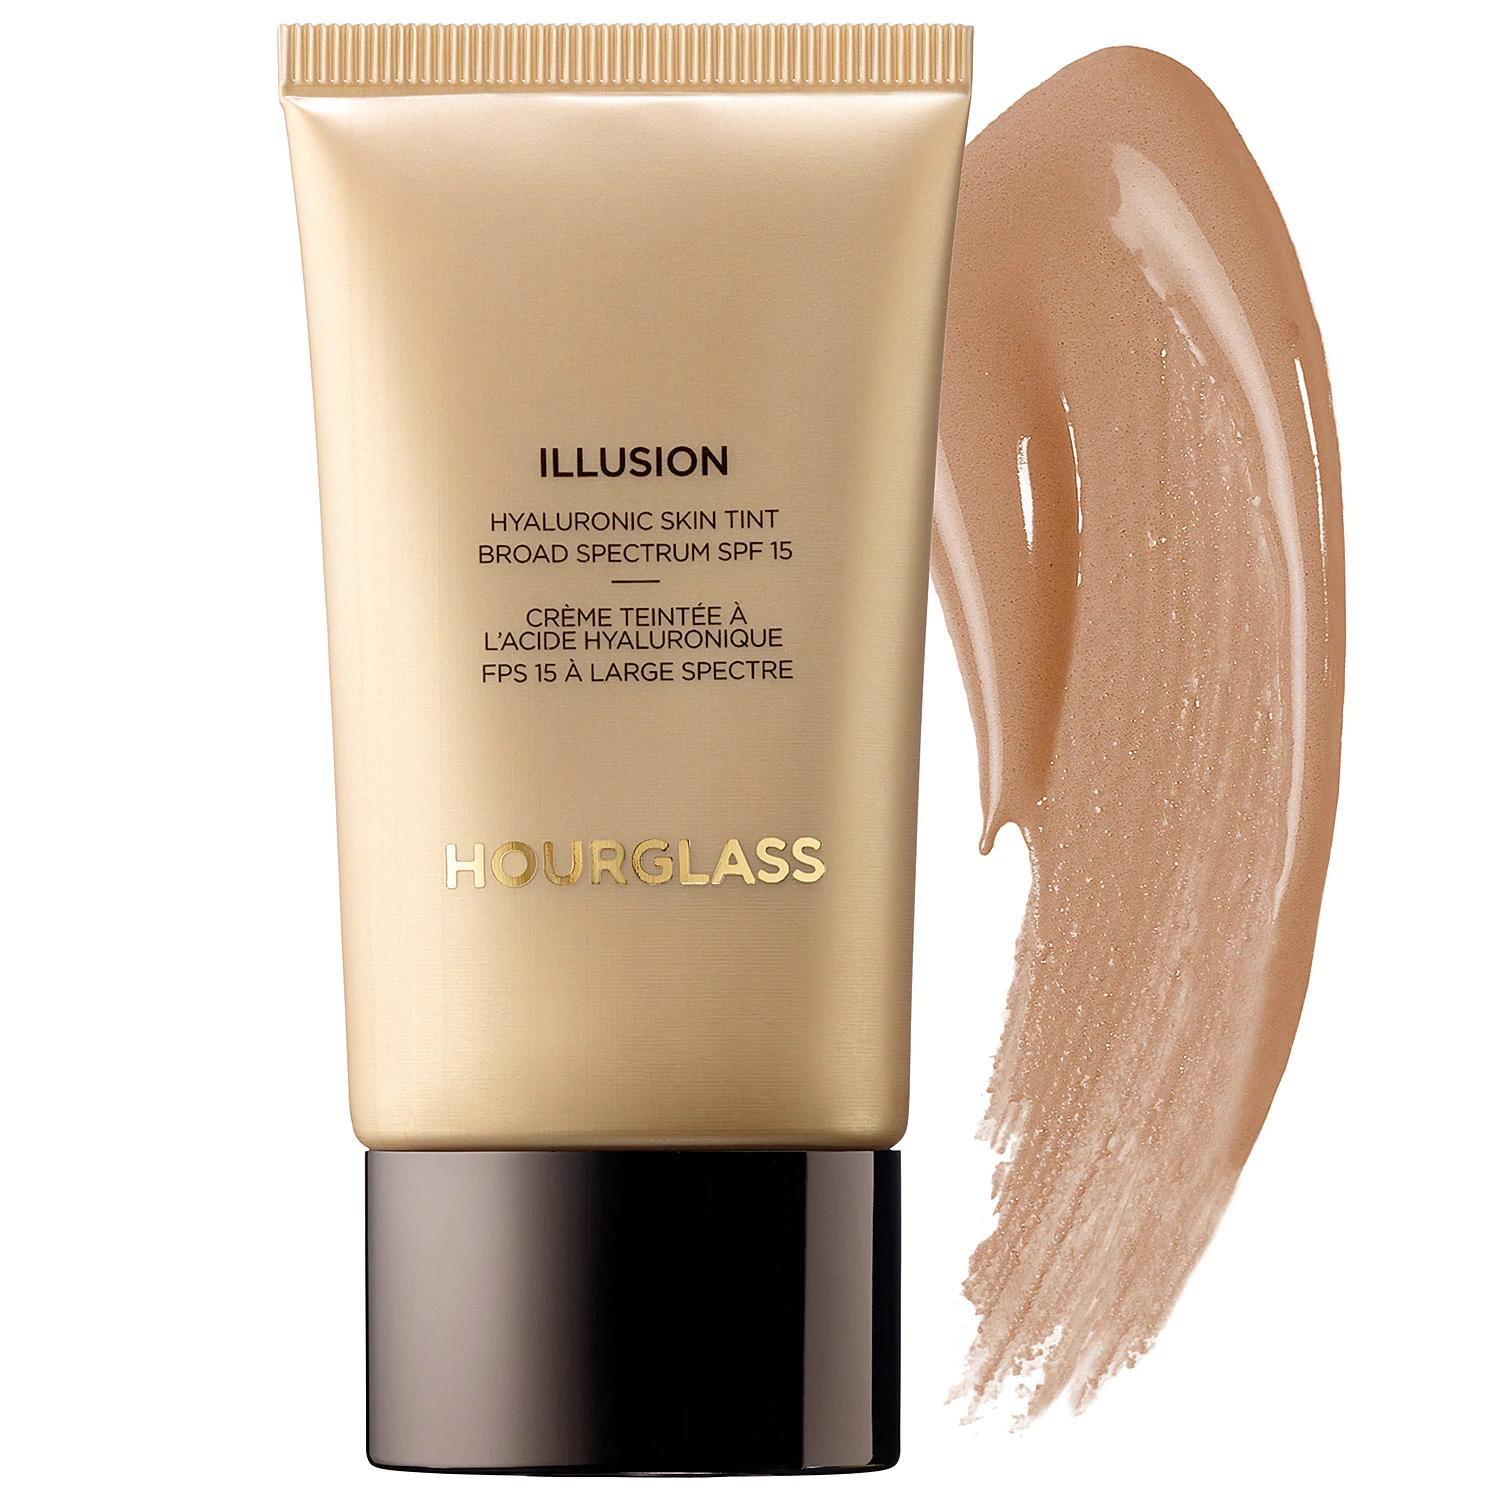 Hourglass Illusion Hyaluronic Skin Tint Sable